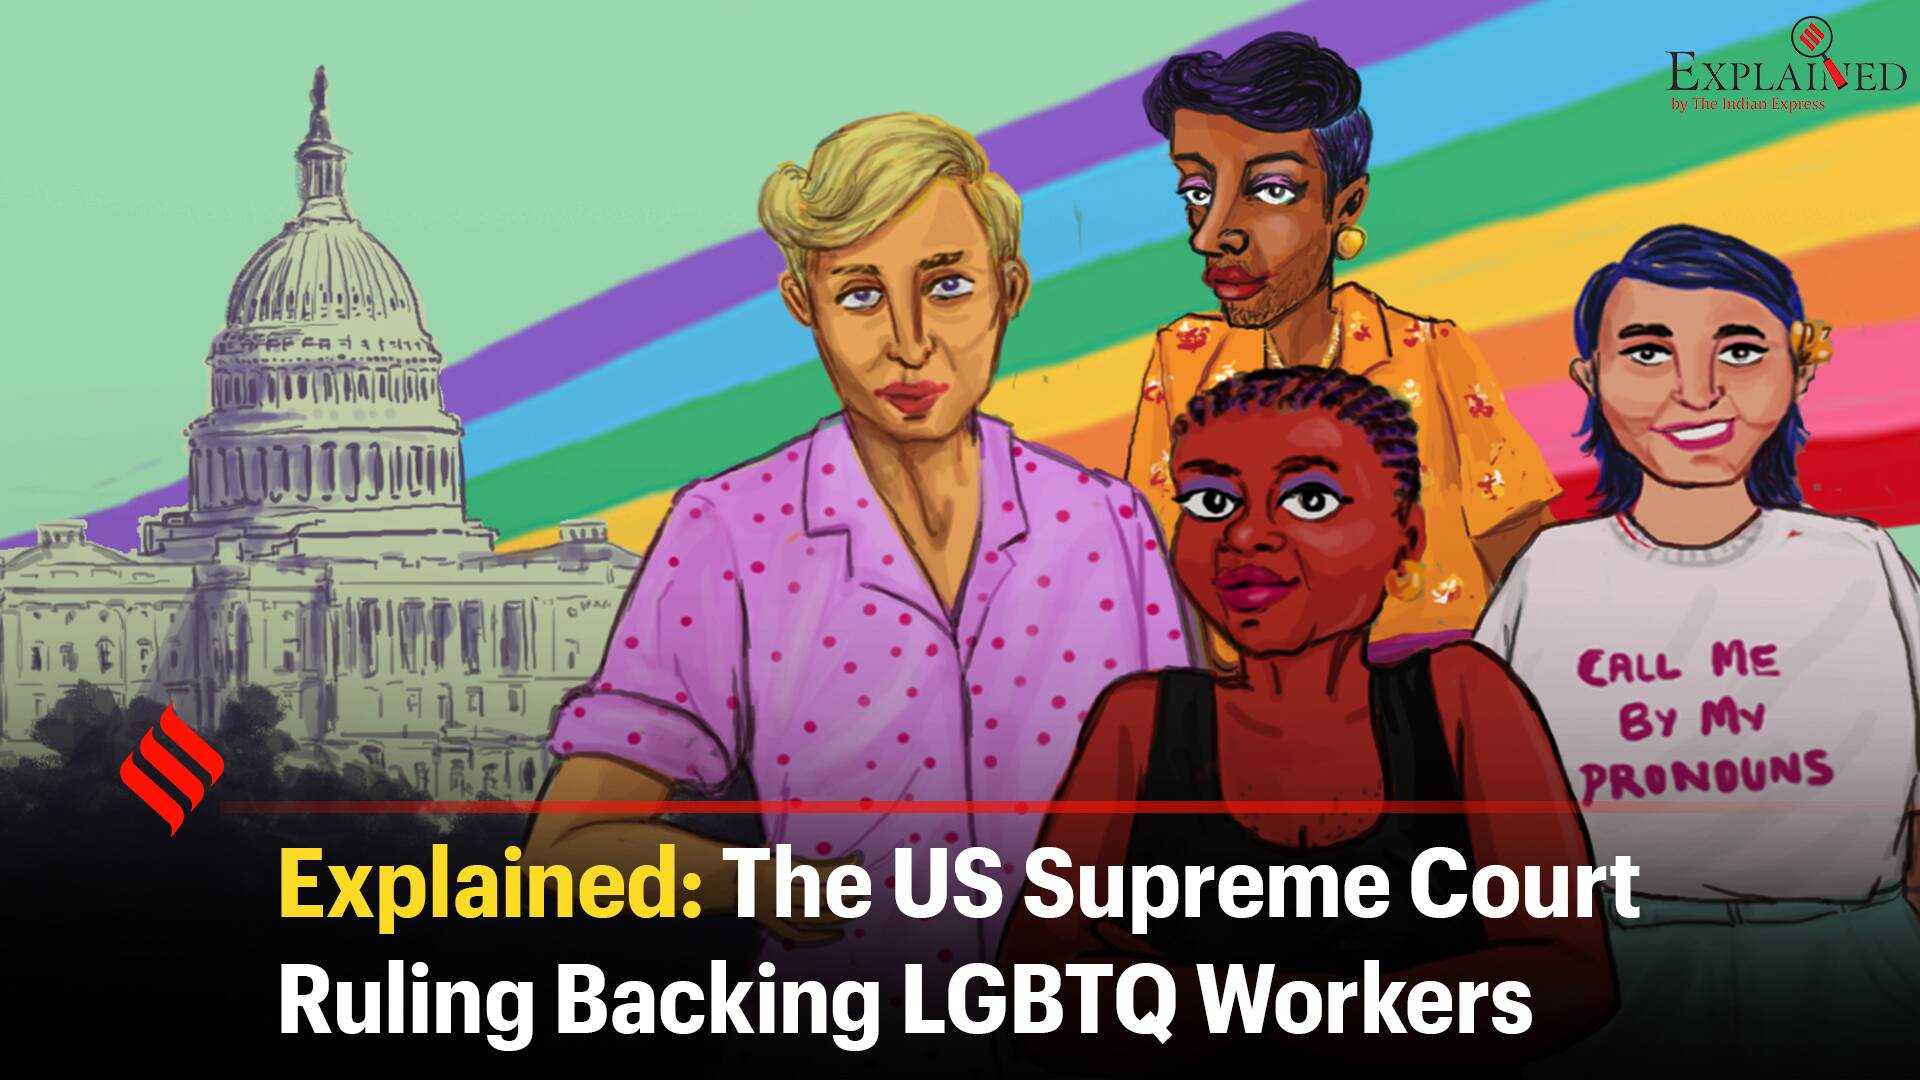 Explained: The US Supreme Court Ruling Backing LGBTQ Workers